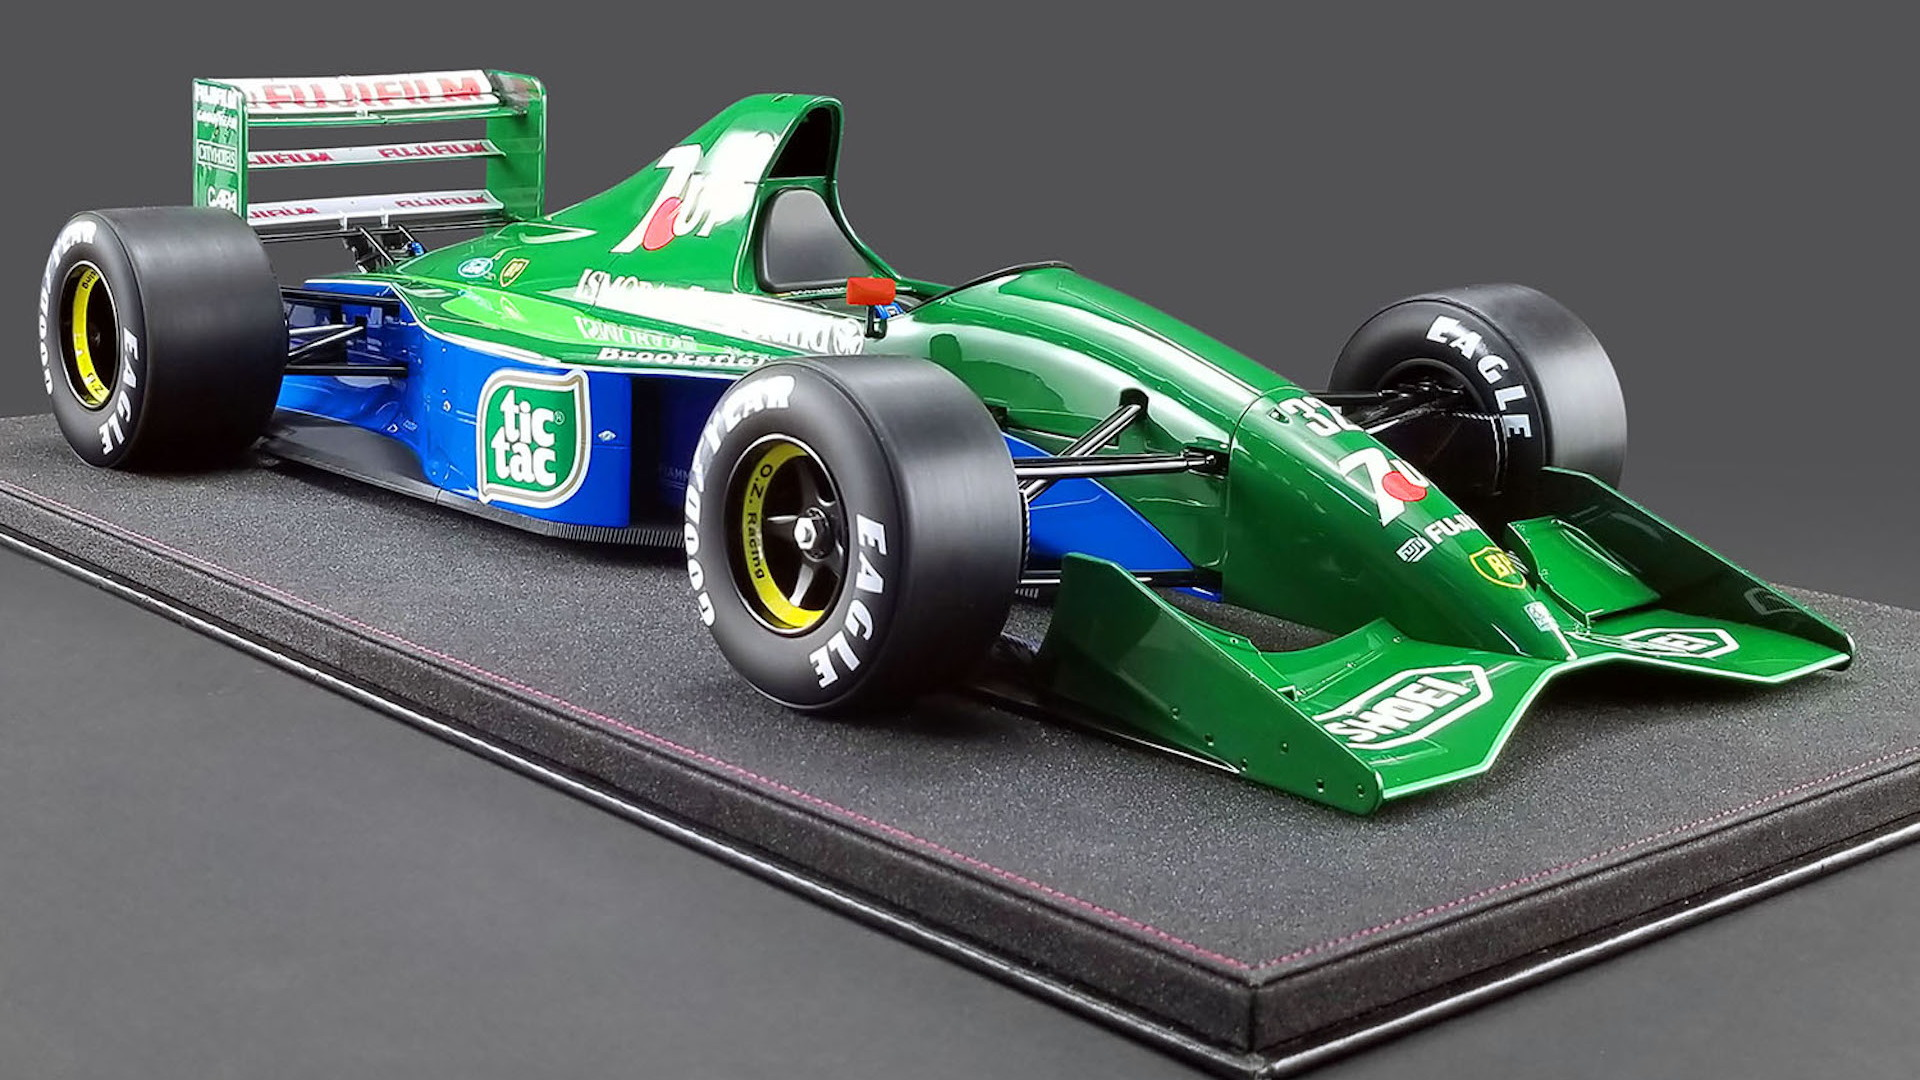 Model of Michael Schumacher's 1991 Jordan F1 car